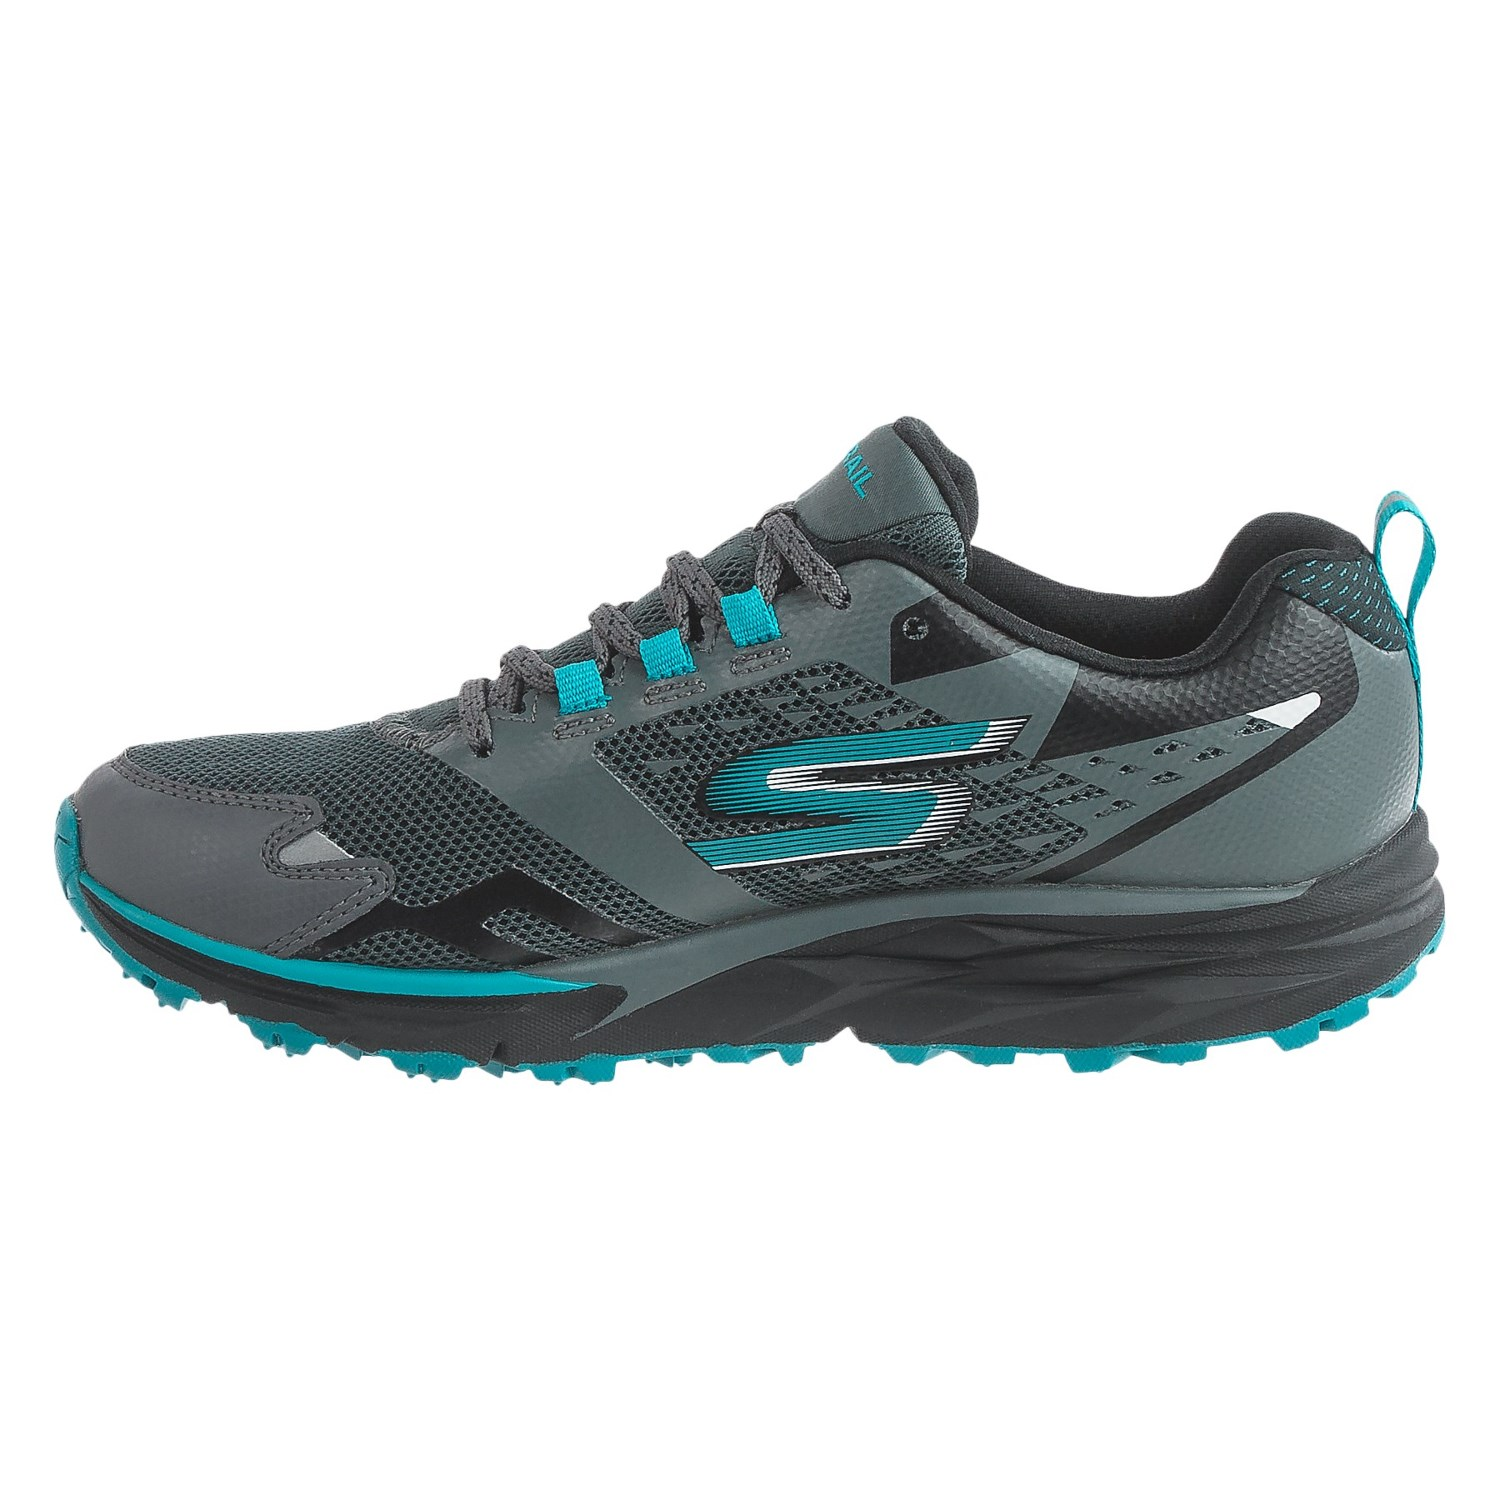 Mountain Running Shoes Review